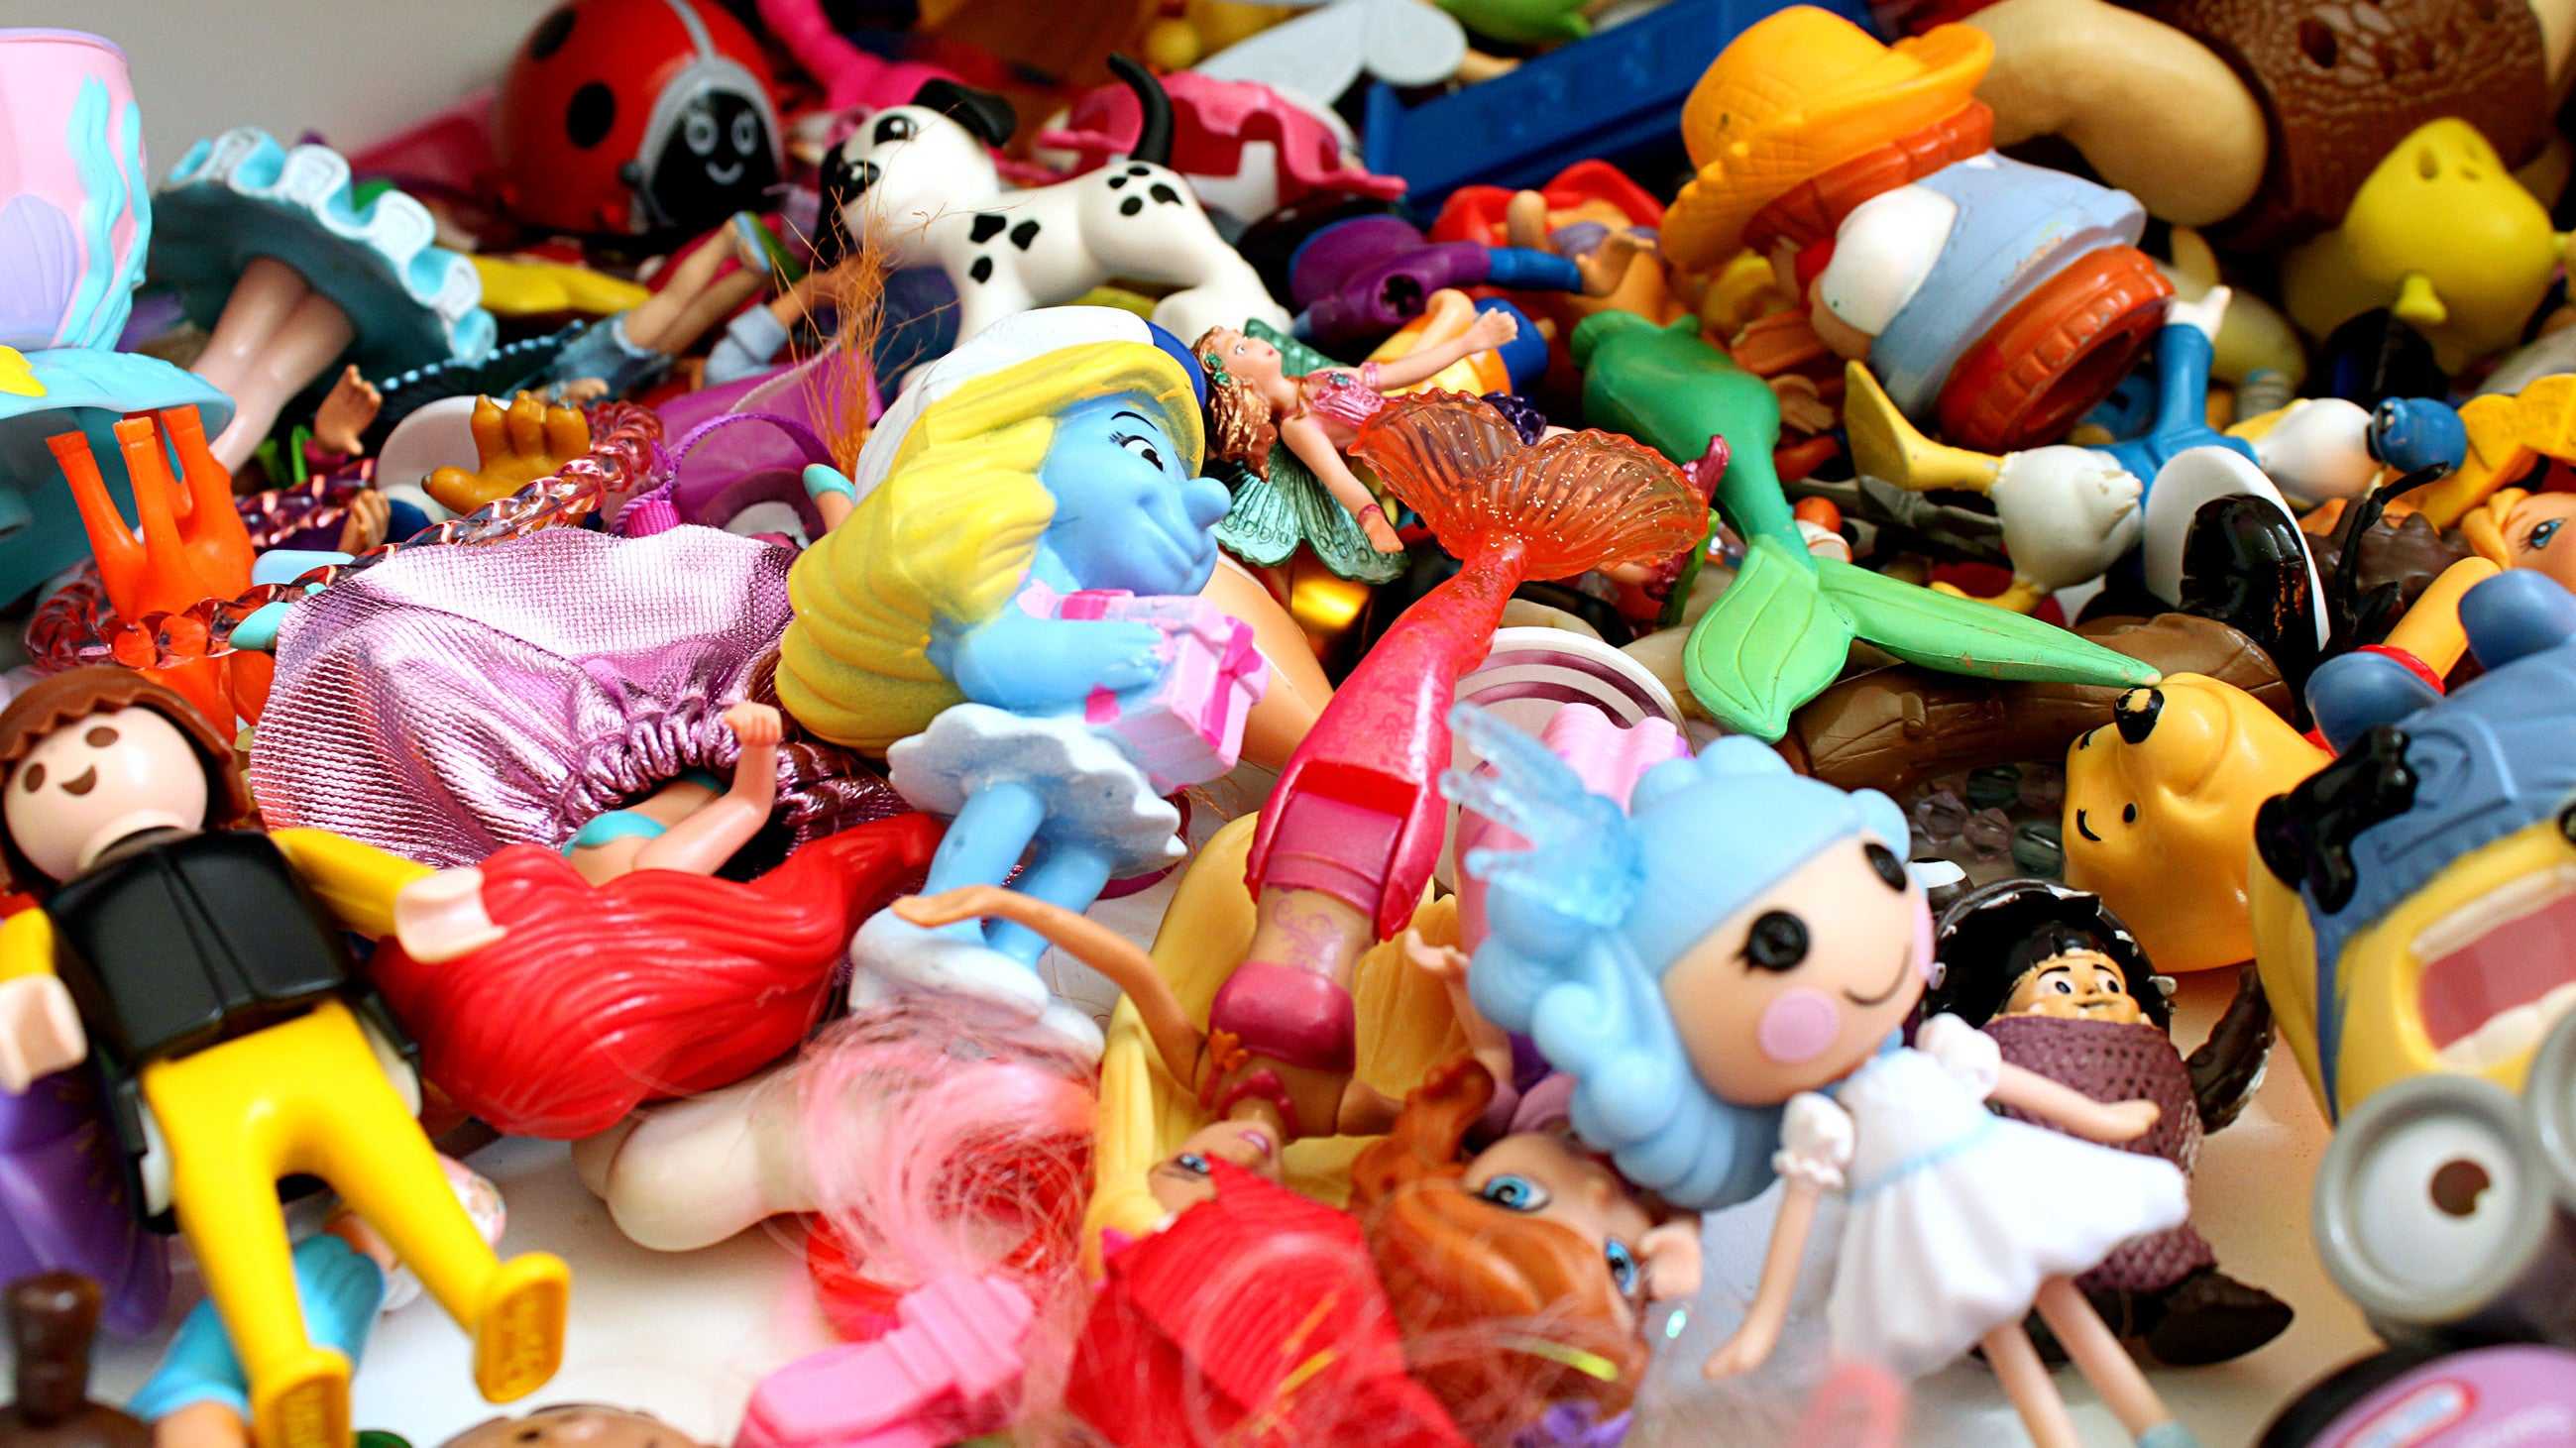 The Best Way To Get Rid Of Your Kids Excess Toys